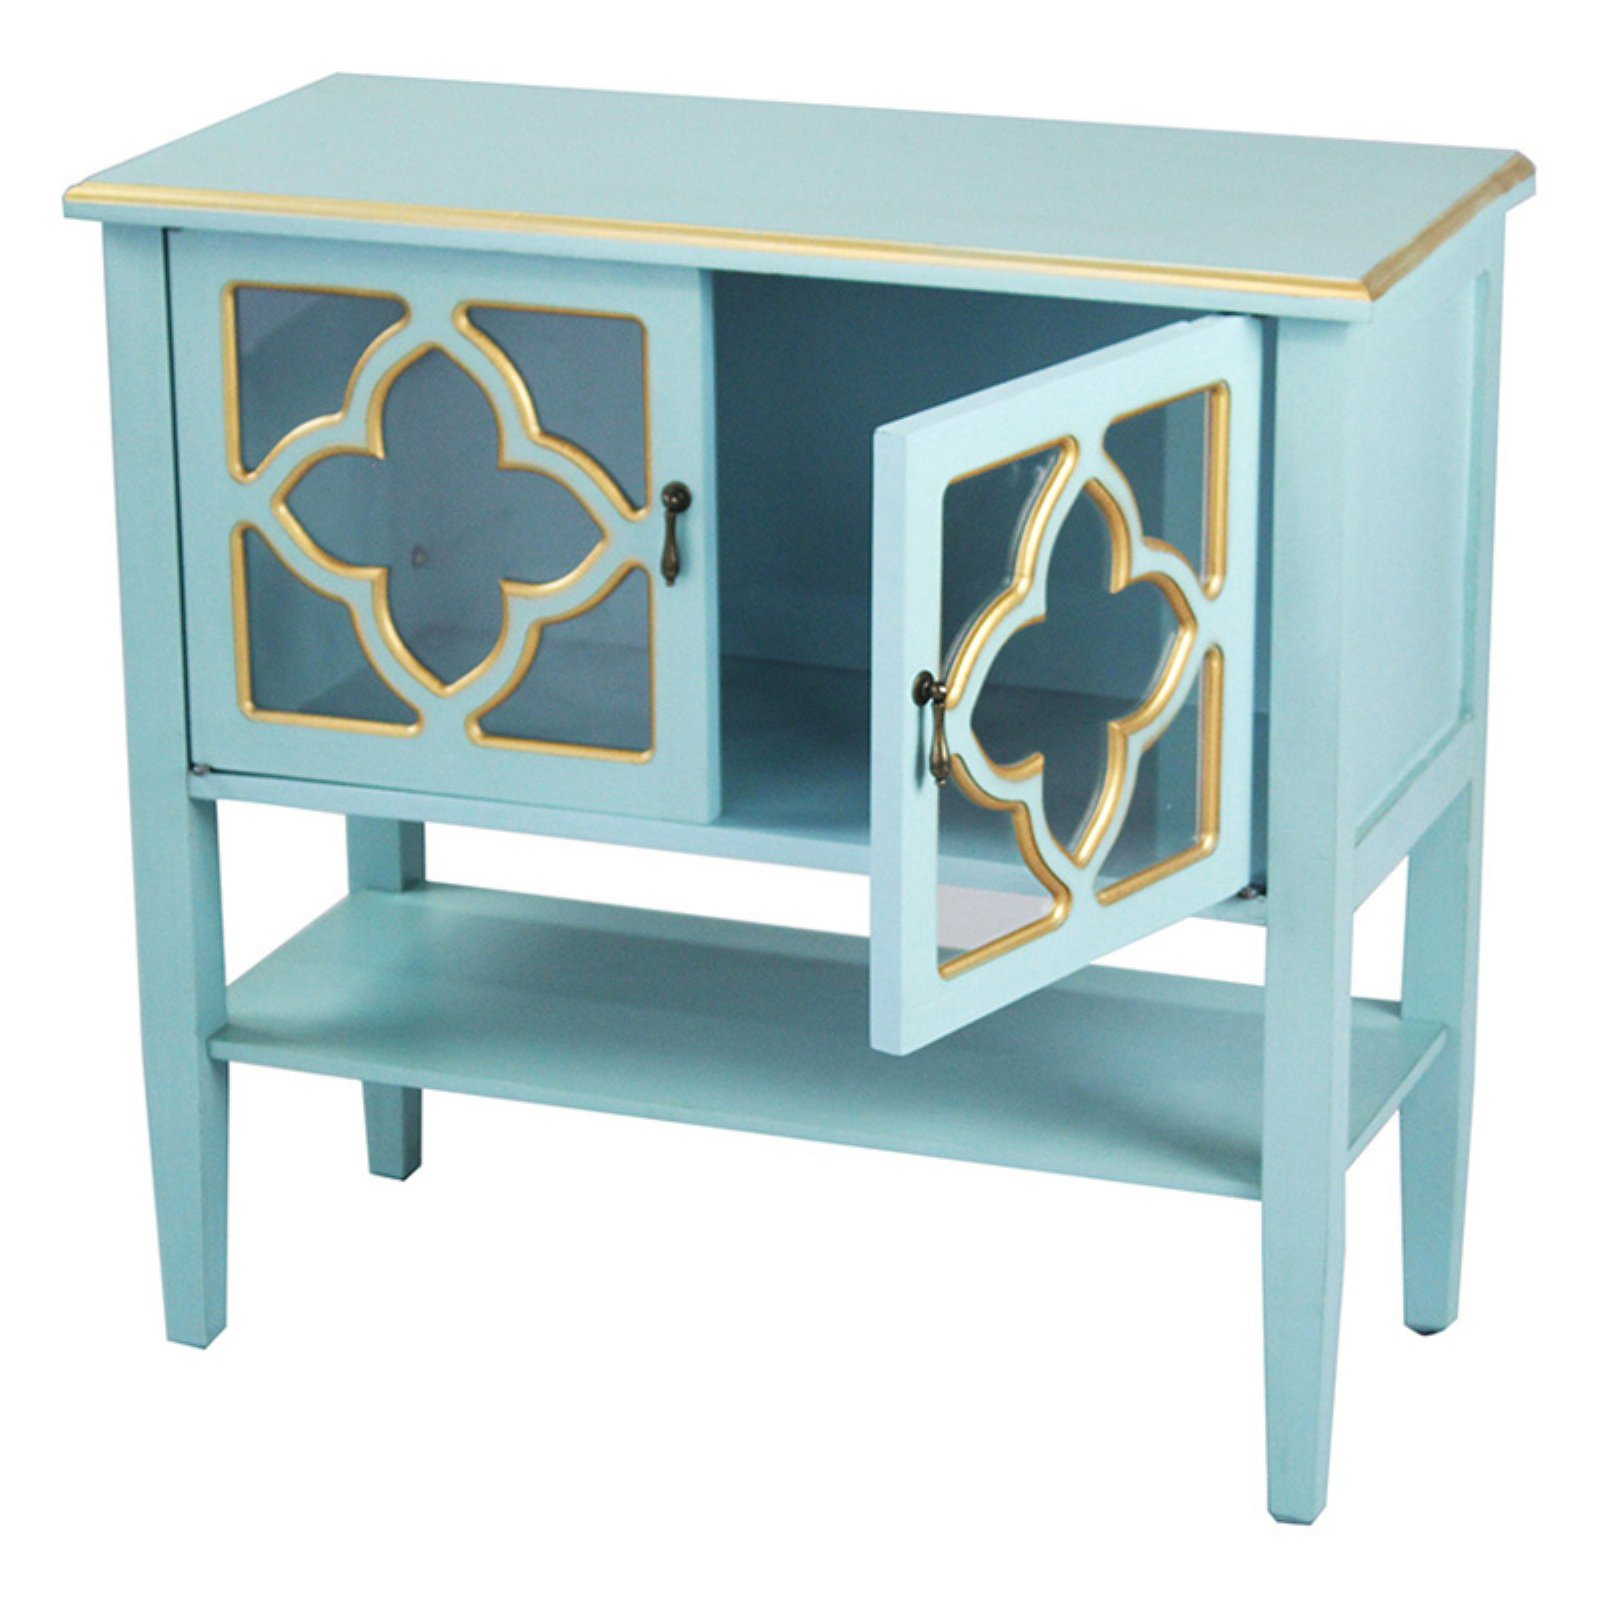 Heather Ann Creations Frasera Quatrefoil Glass Console Cabinet